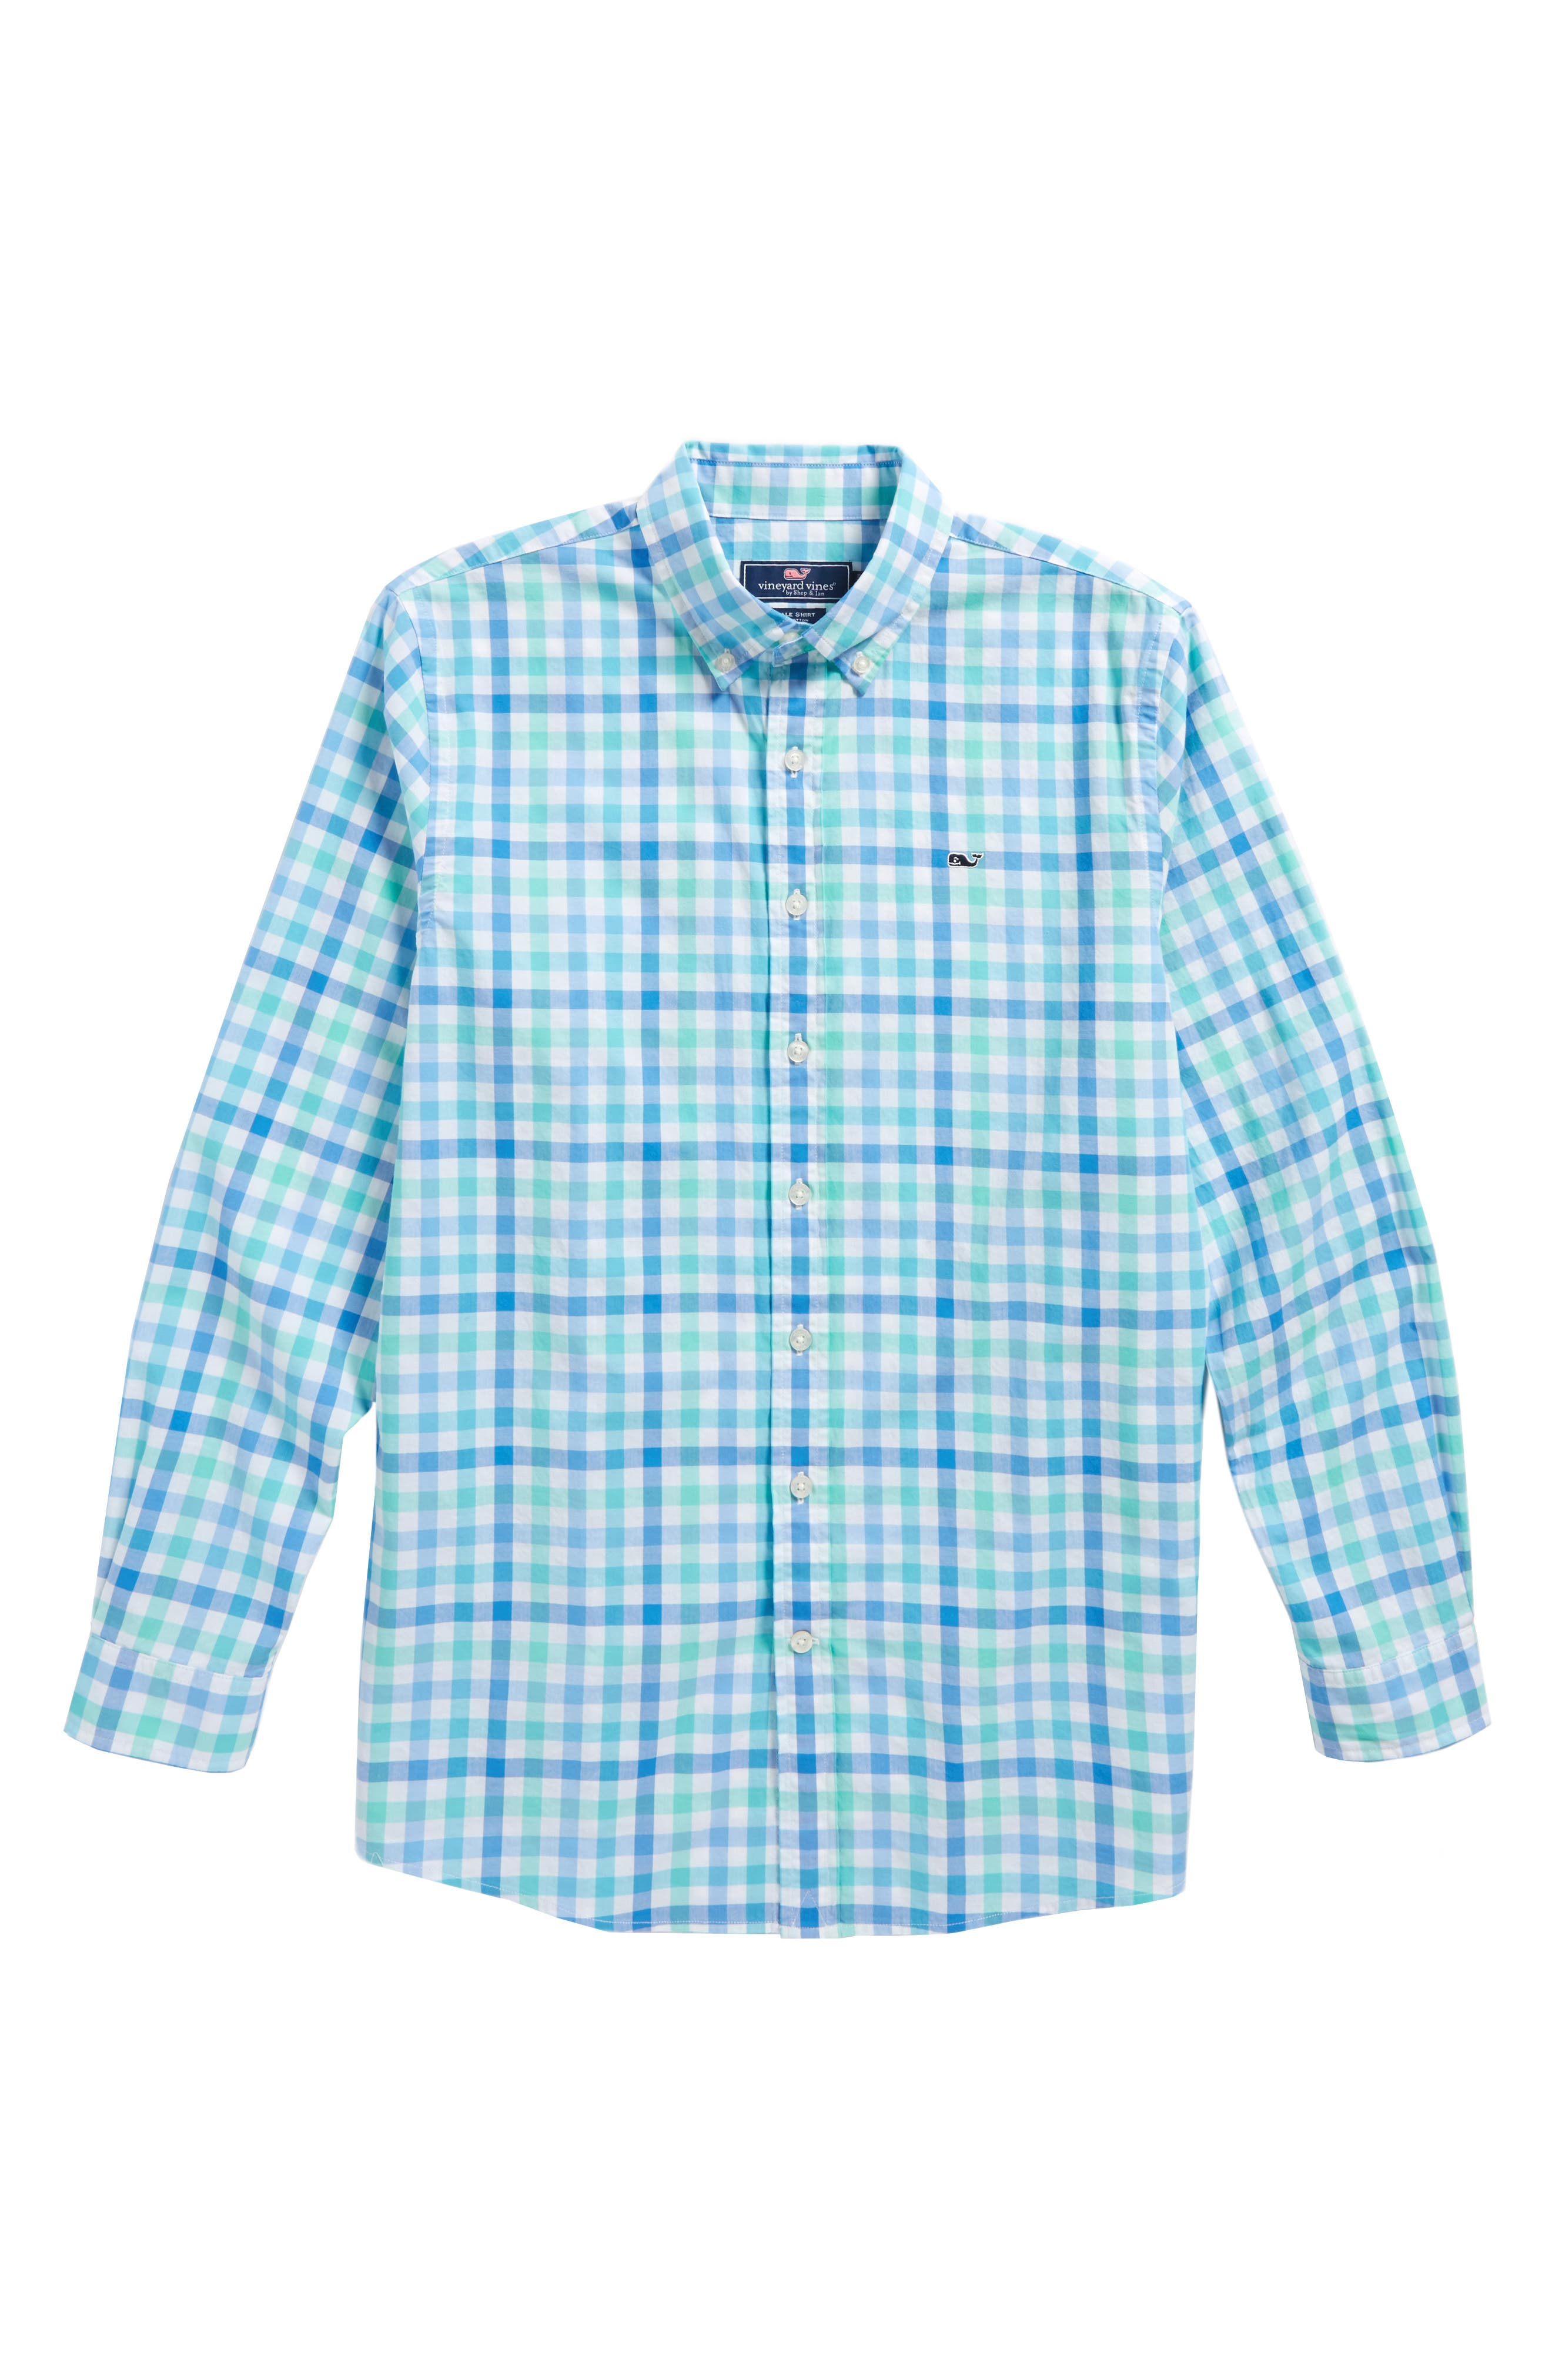 Eagle's Nest Gingham Whale Shirt,                             Main thumbnail 1, color,                             Turqs